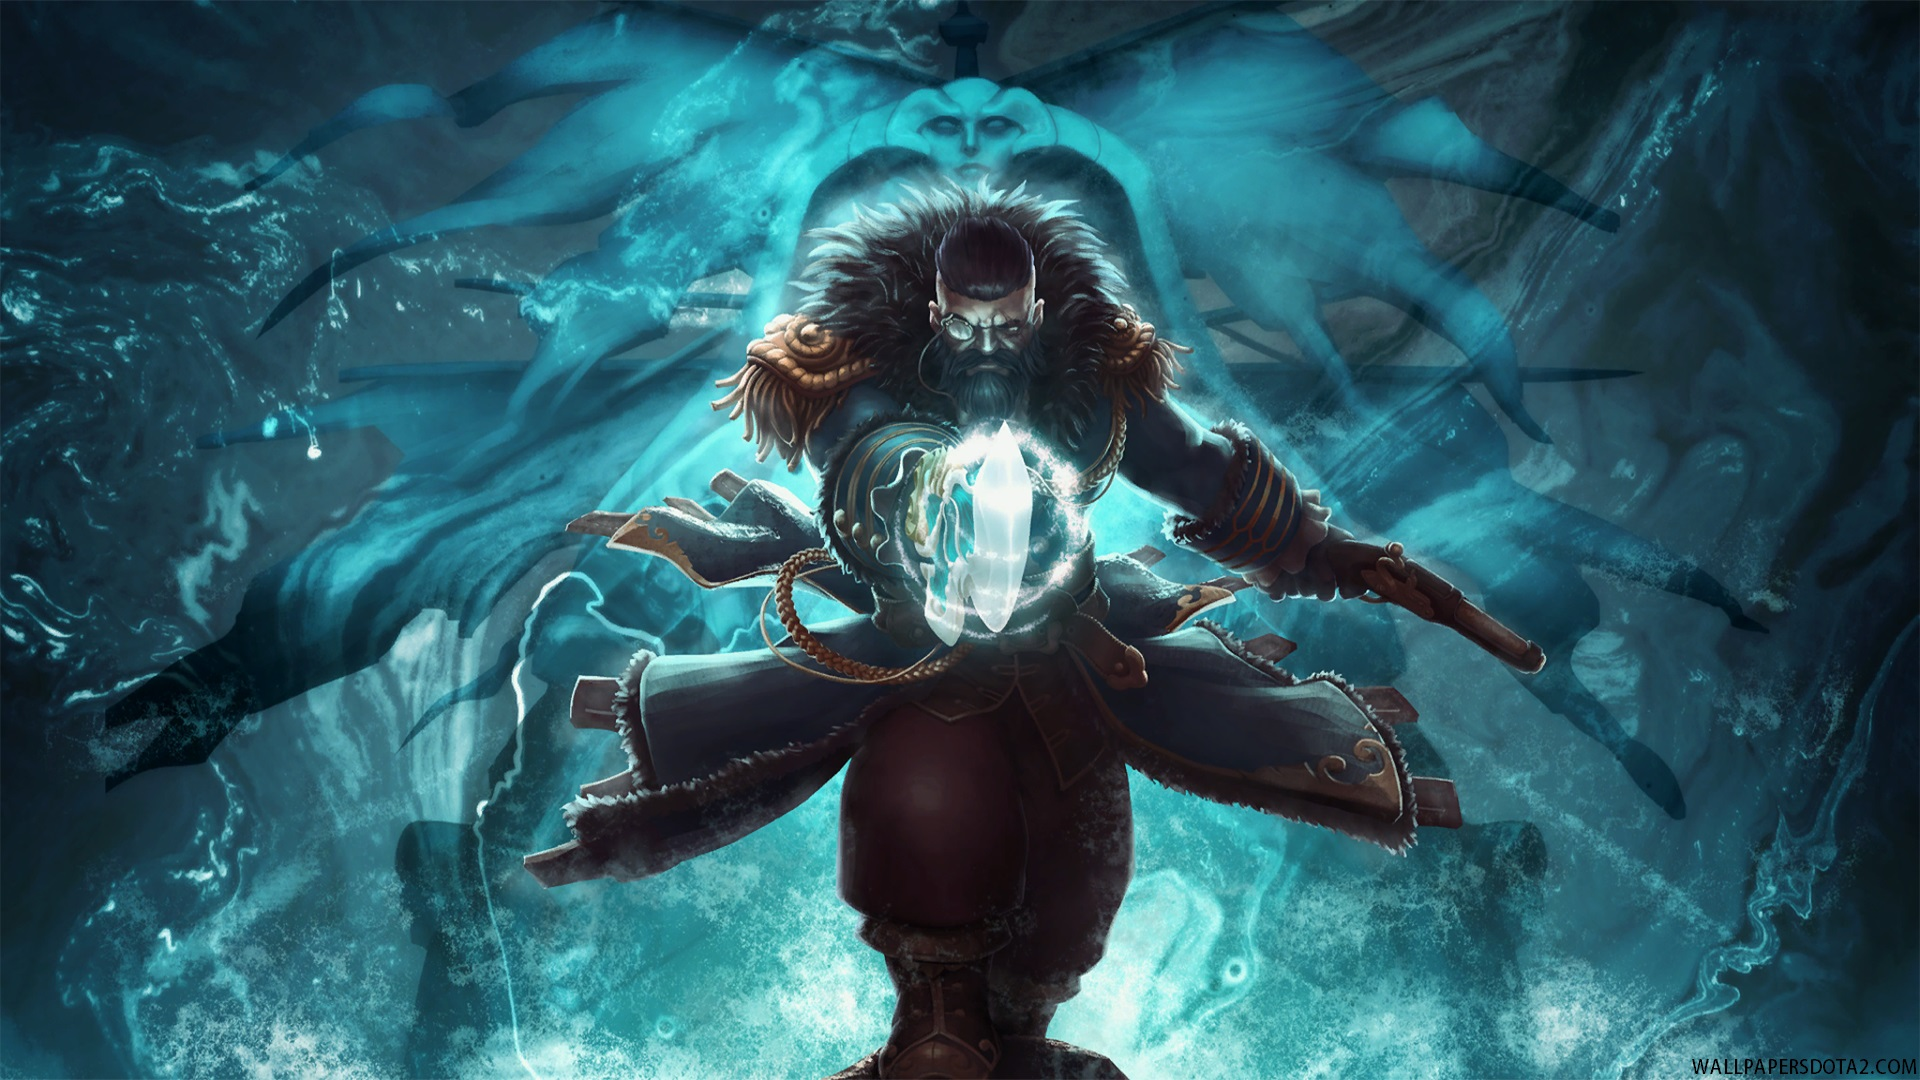 Kunkka desktop Bestowments of the Divine Anchor wallpapers download Dota 2